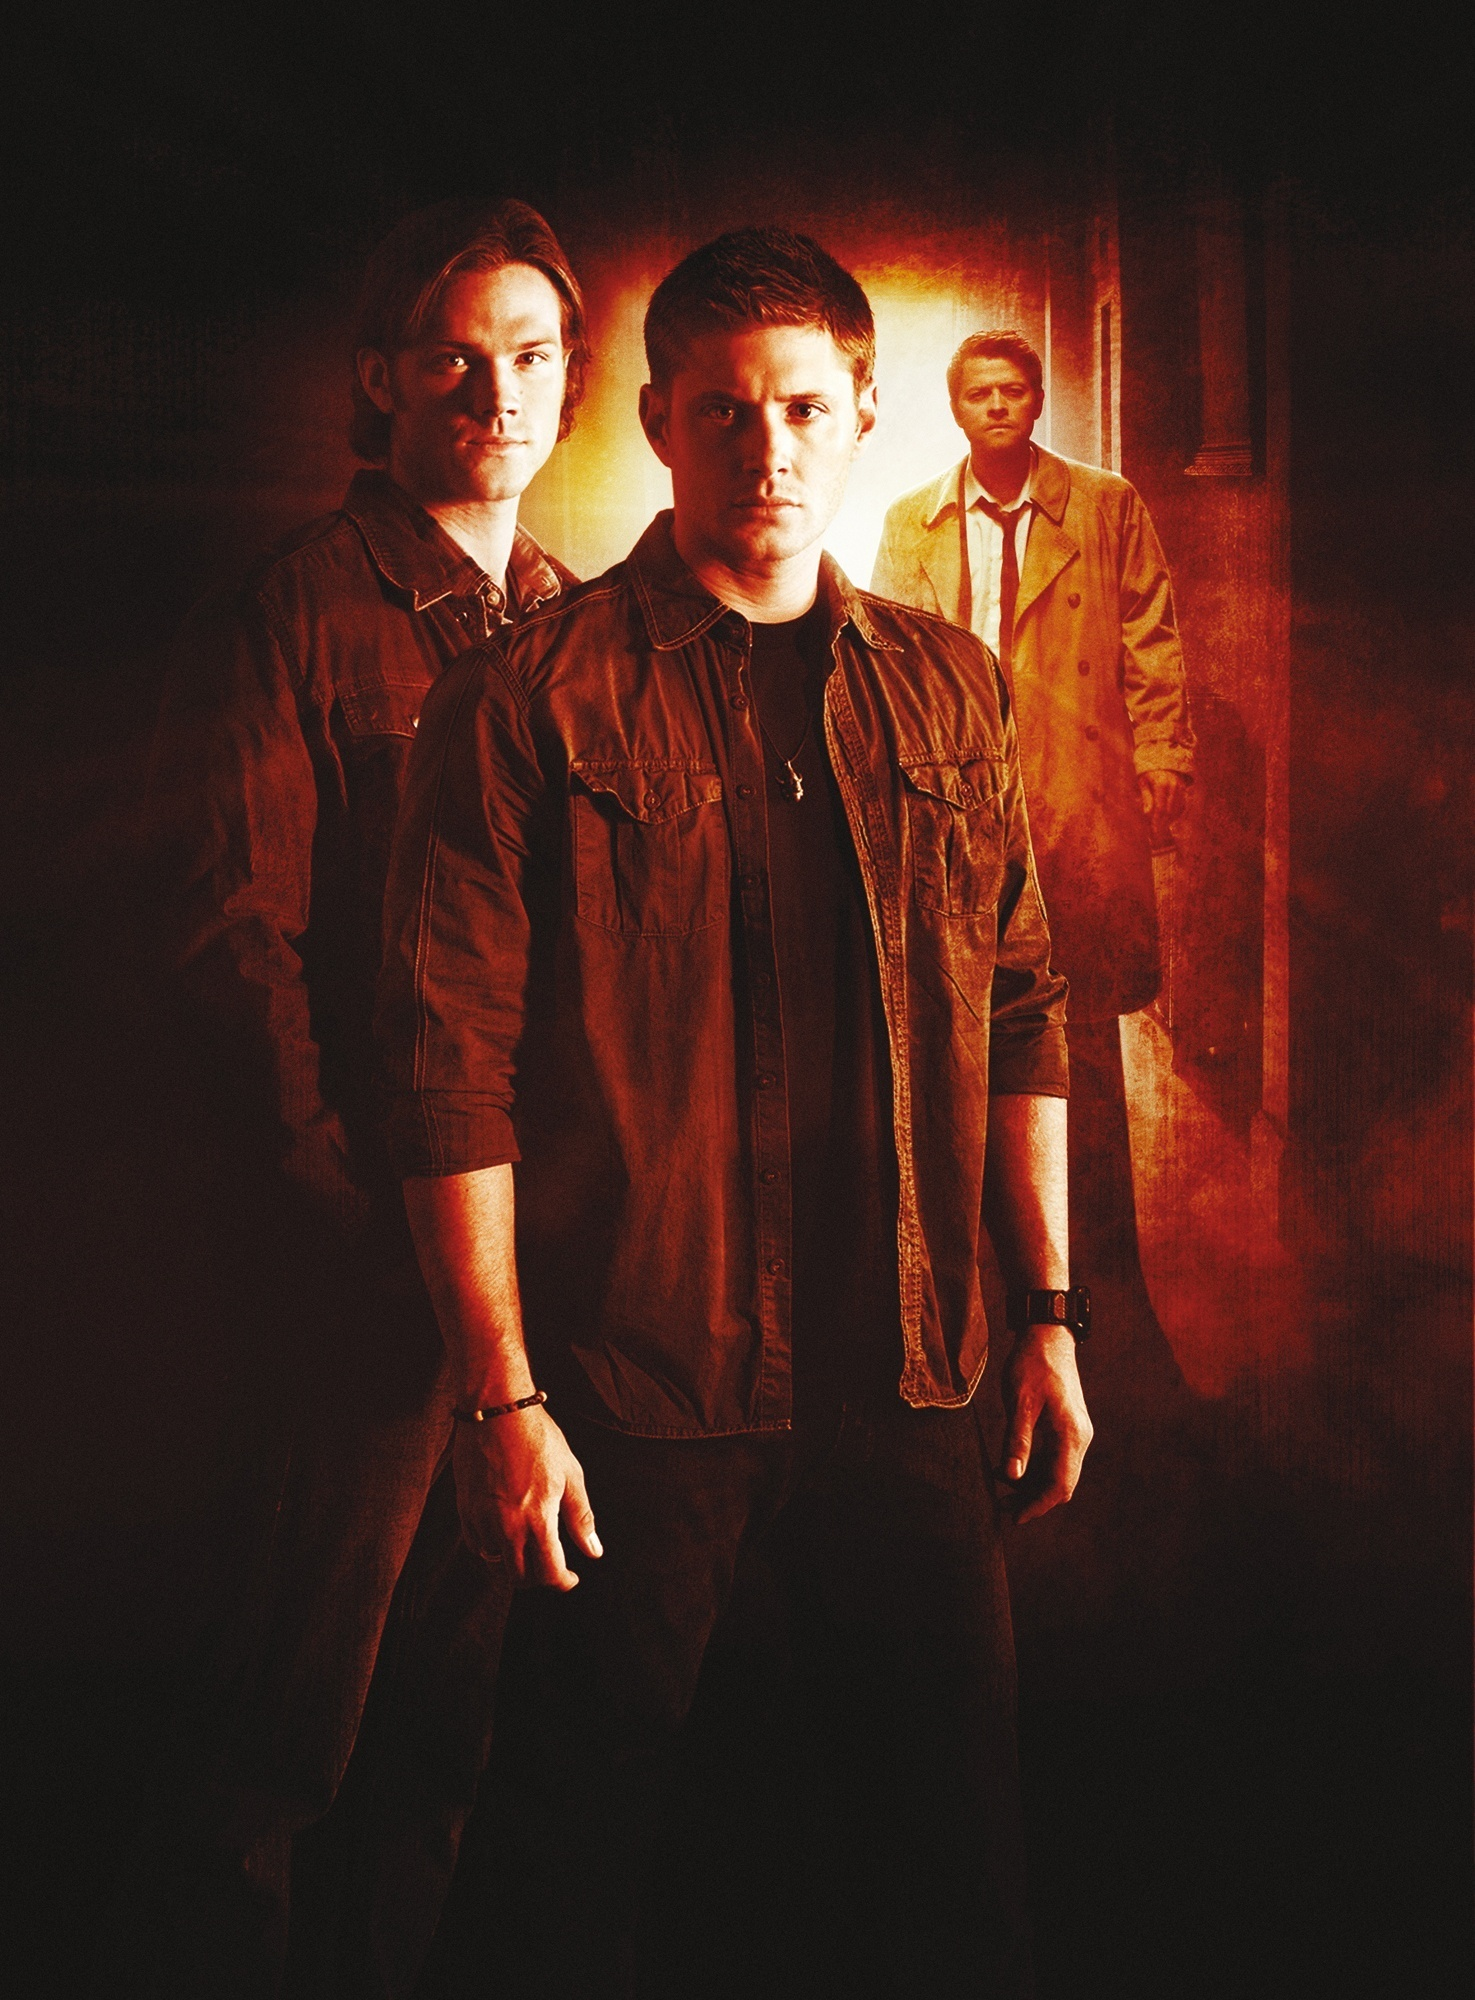 Supernatural Wallpaper Dean Quotes Spn Season 5 Marketing Pictures Supernatural Photo